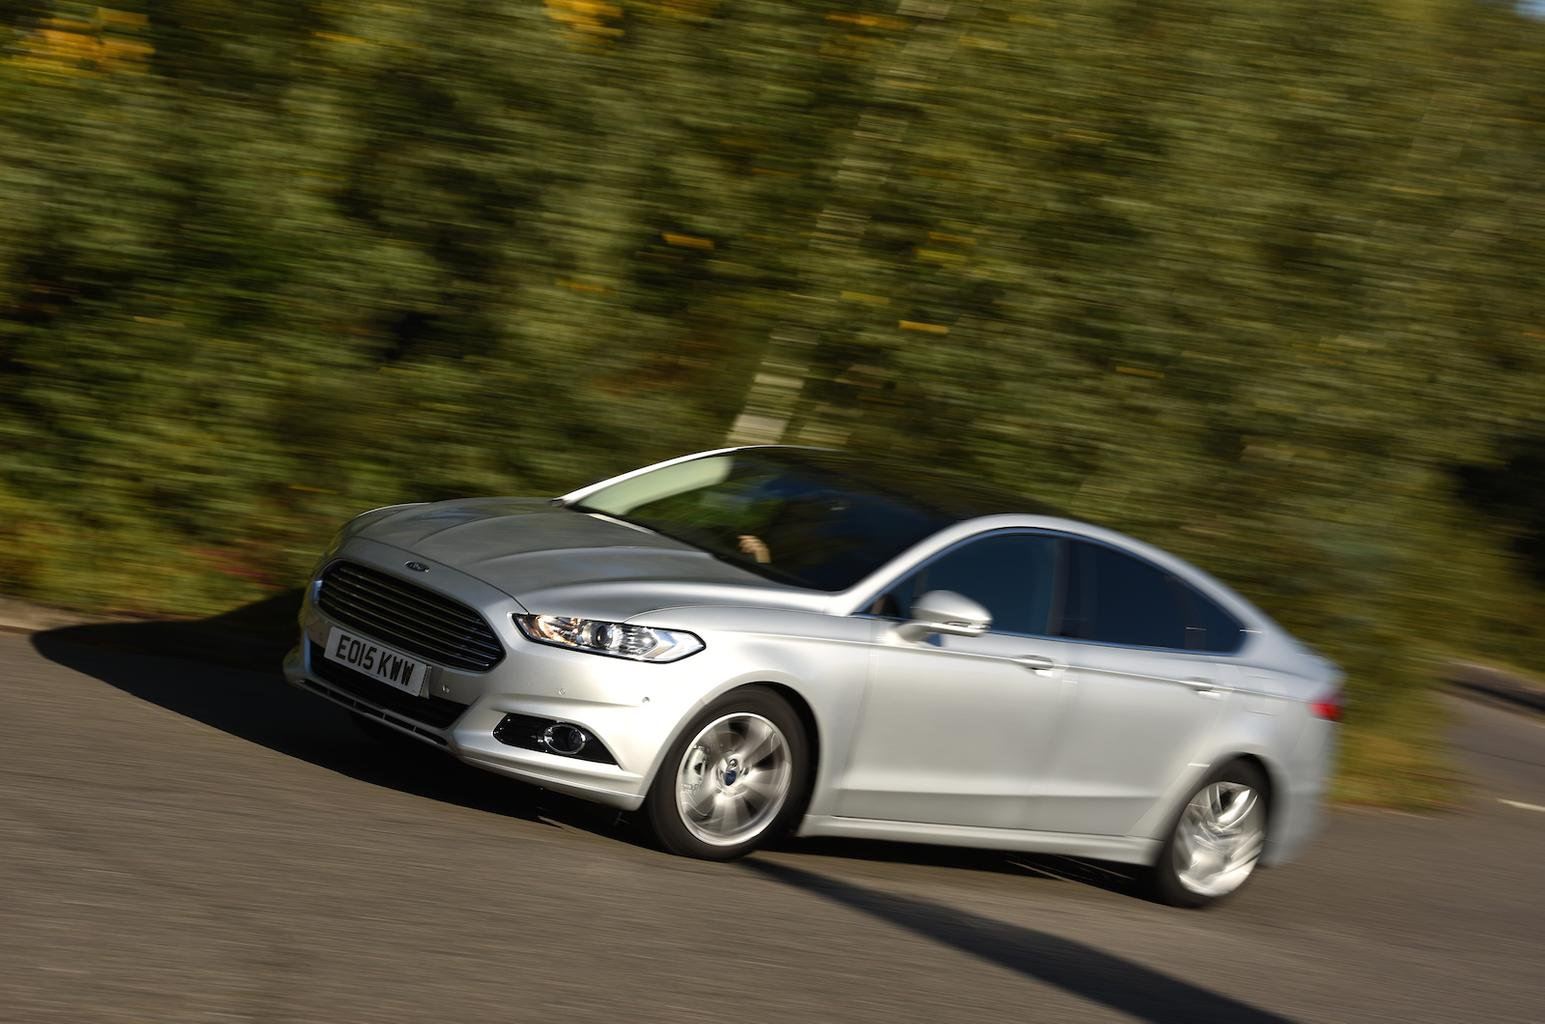 2015 Ford Mondeo 2.0 TDCi 150 AWD review